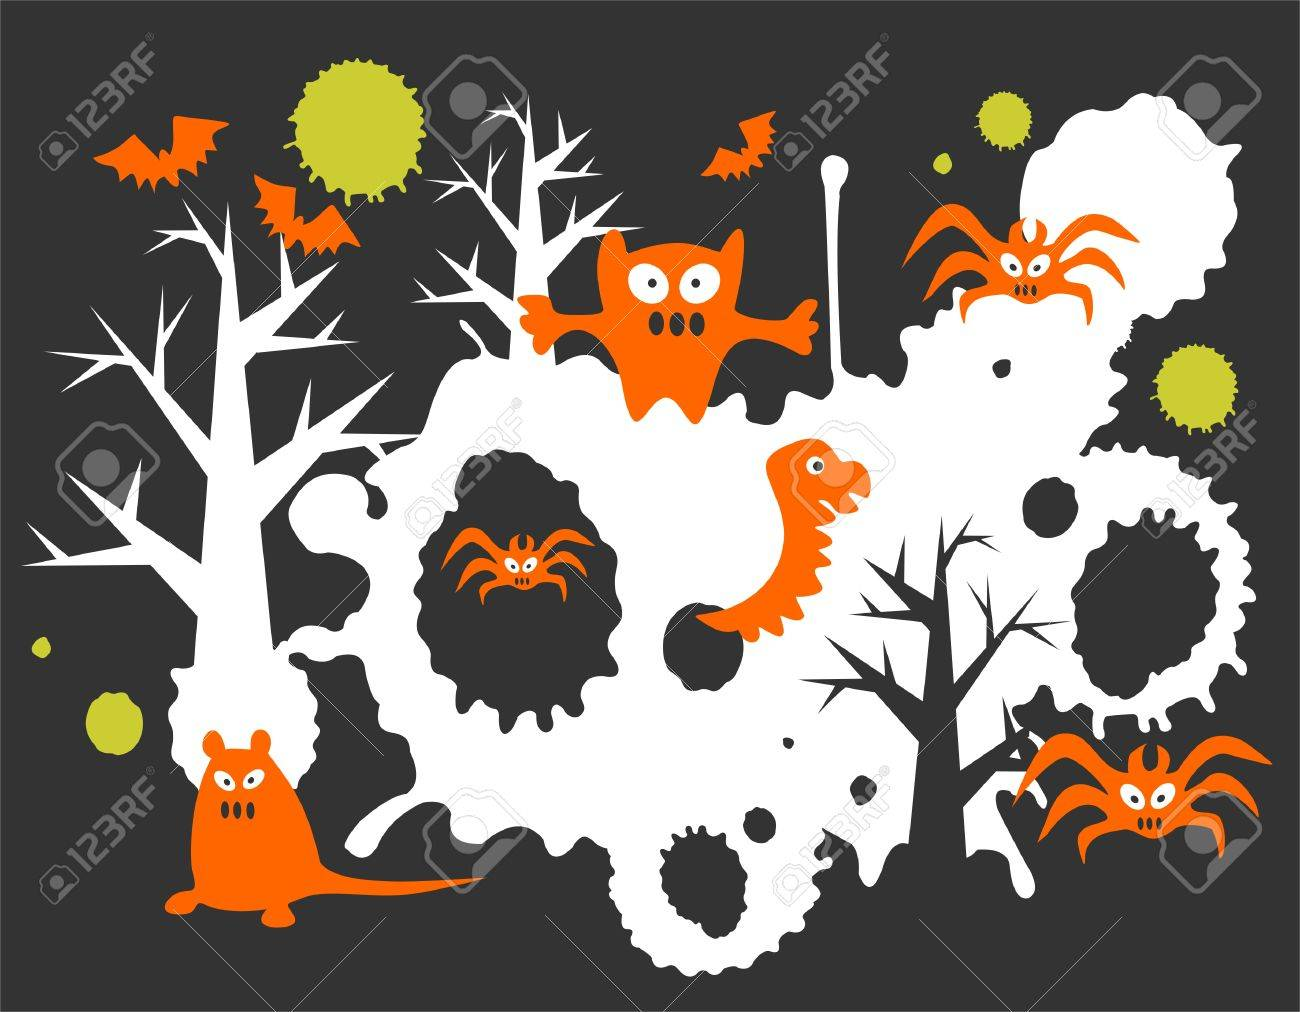 Monsters and grunge pattern on a black background. Halloween illustration. Stock Vector - 3590015